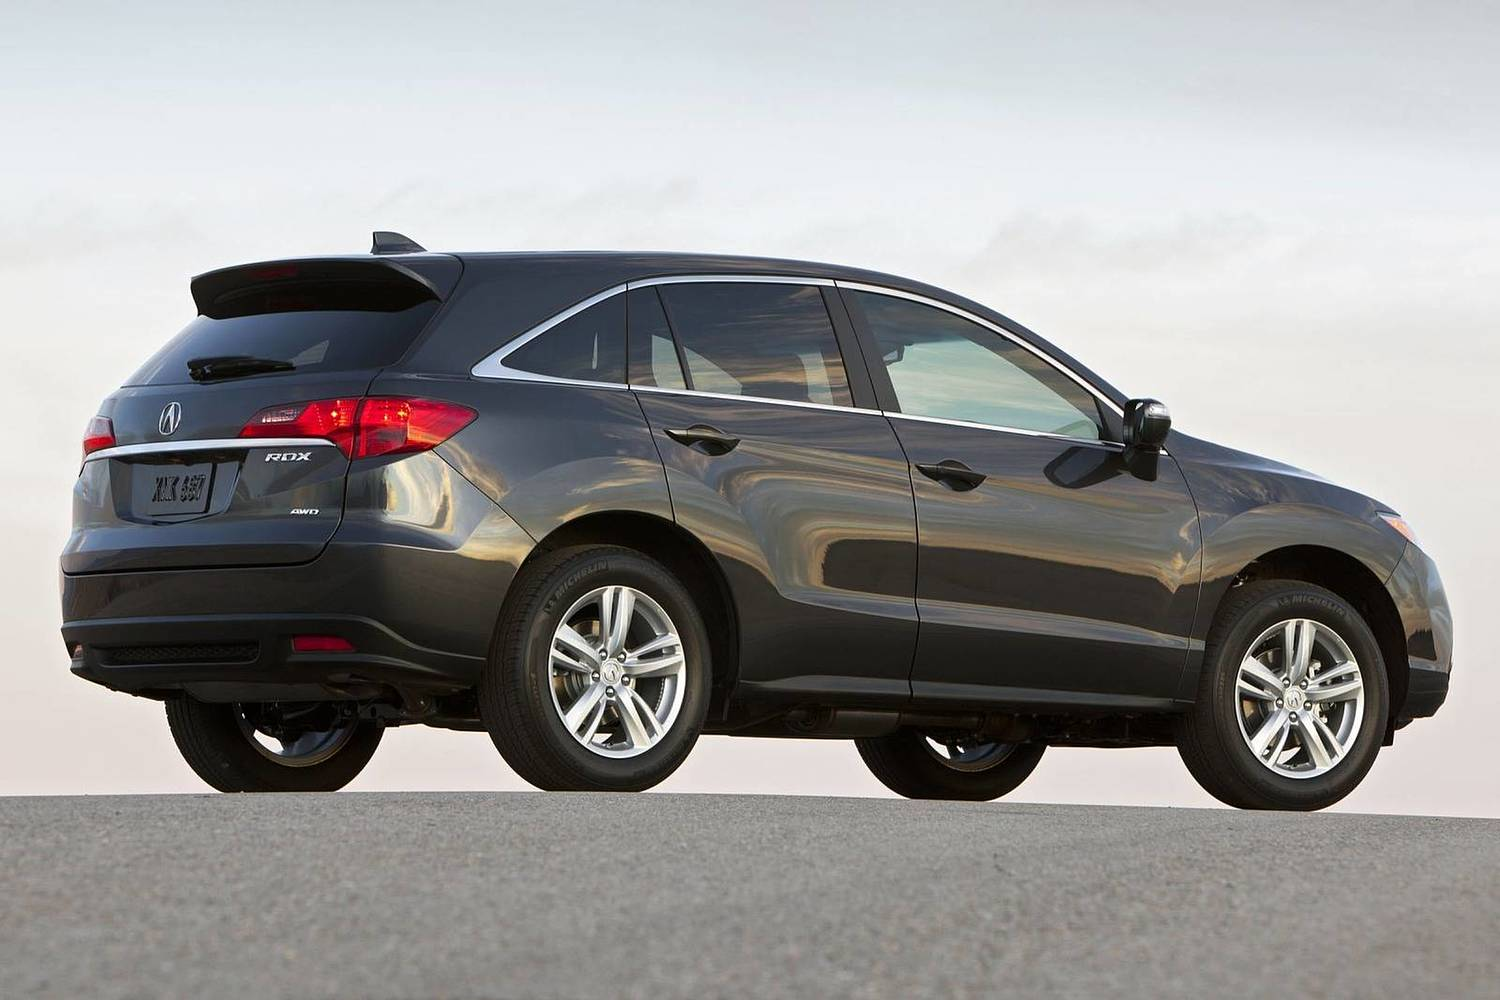 Acura RDX 4dr SUV Exterior (2014 model year shown)